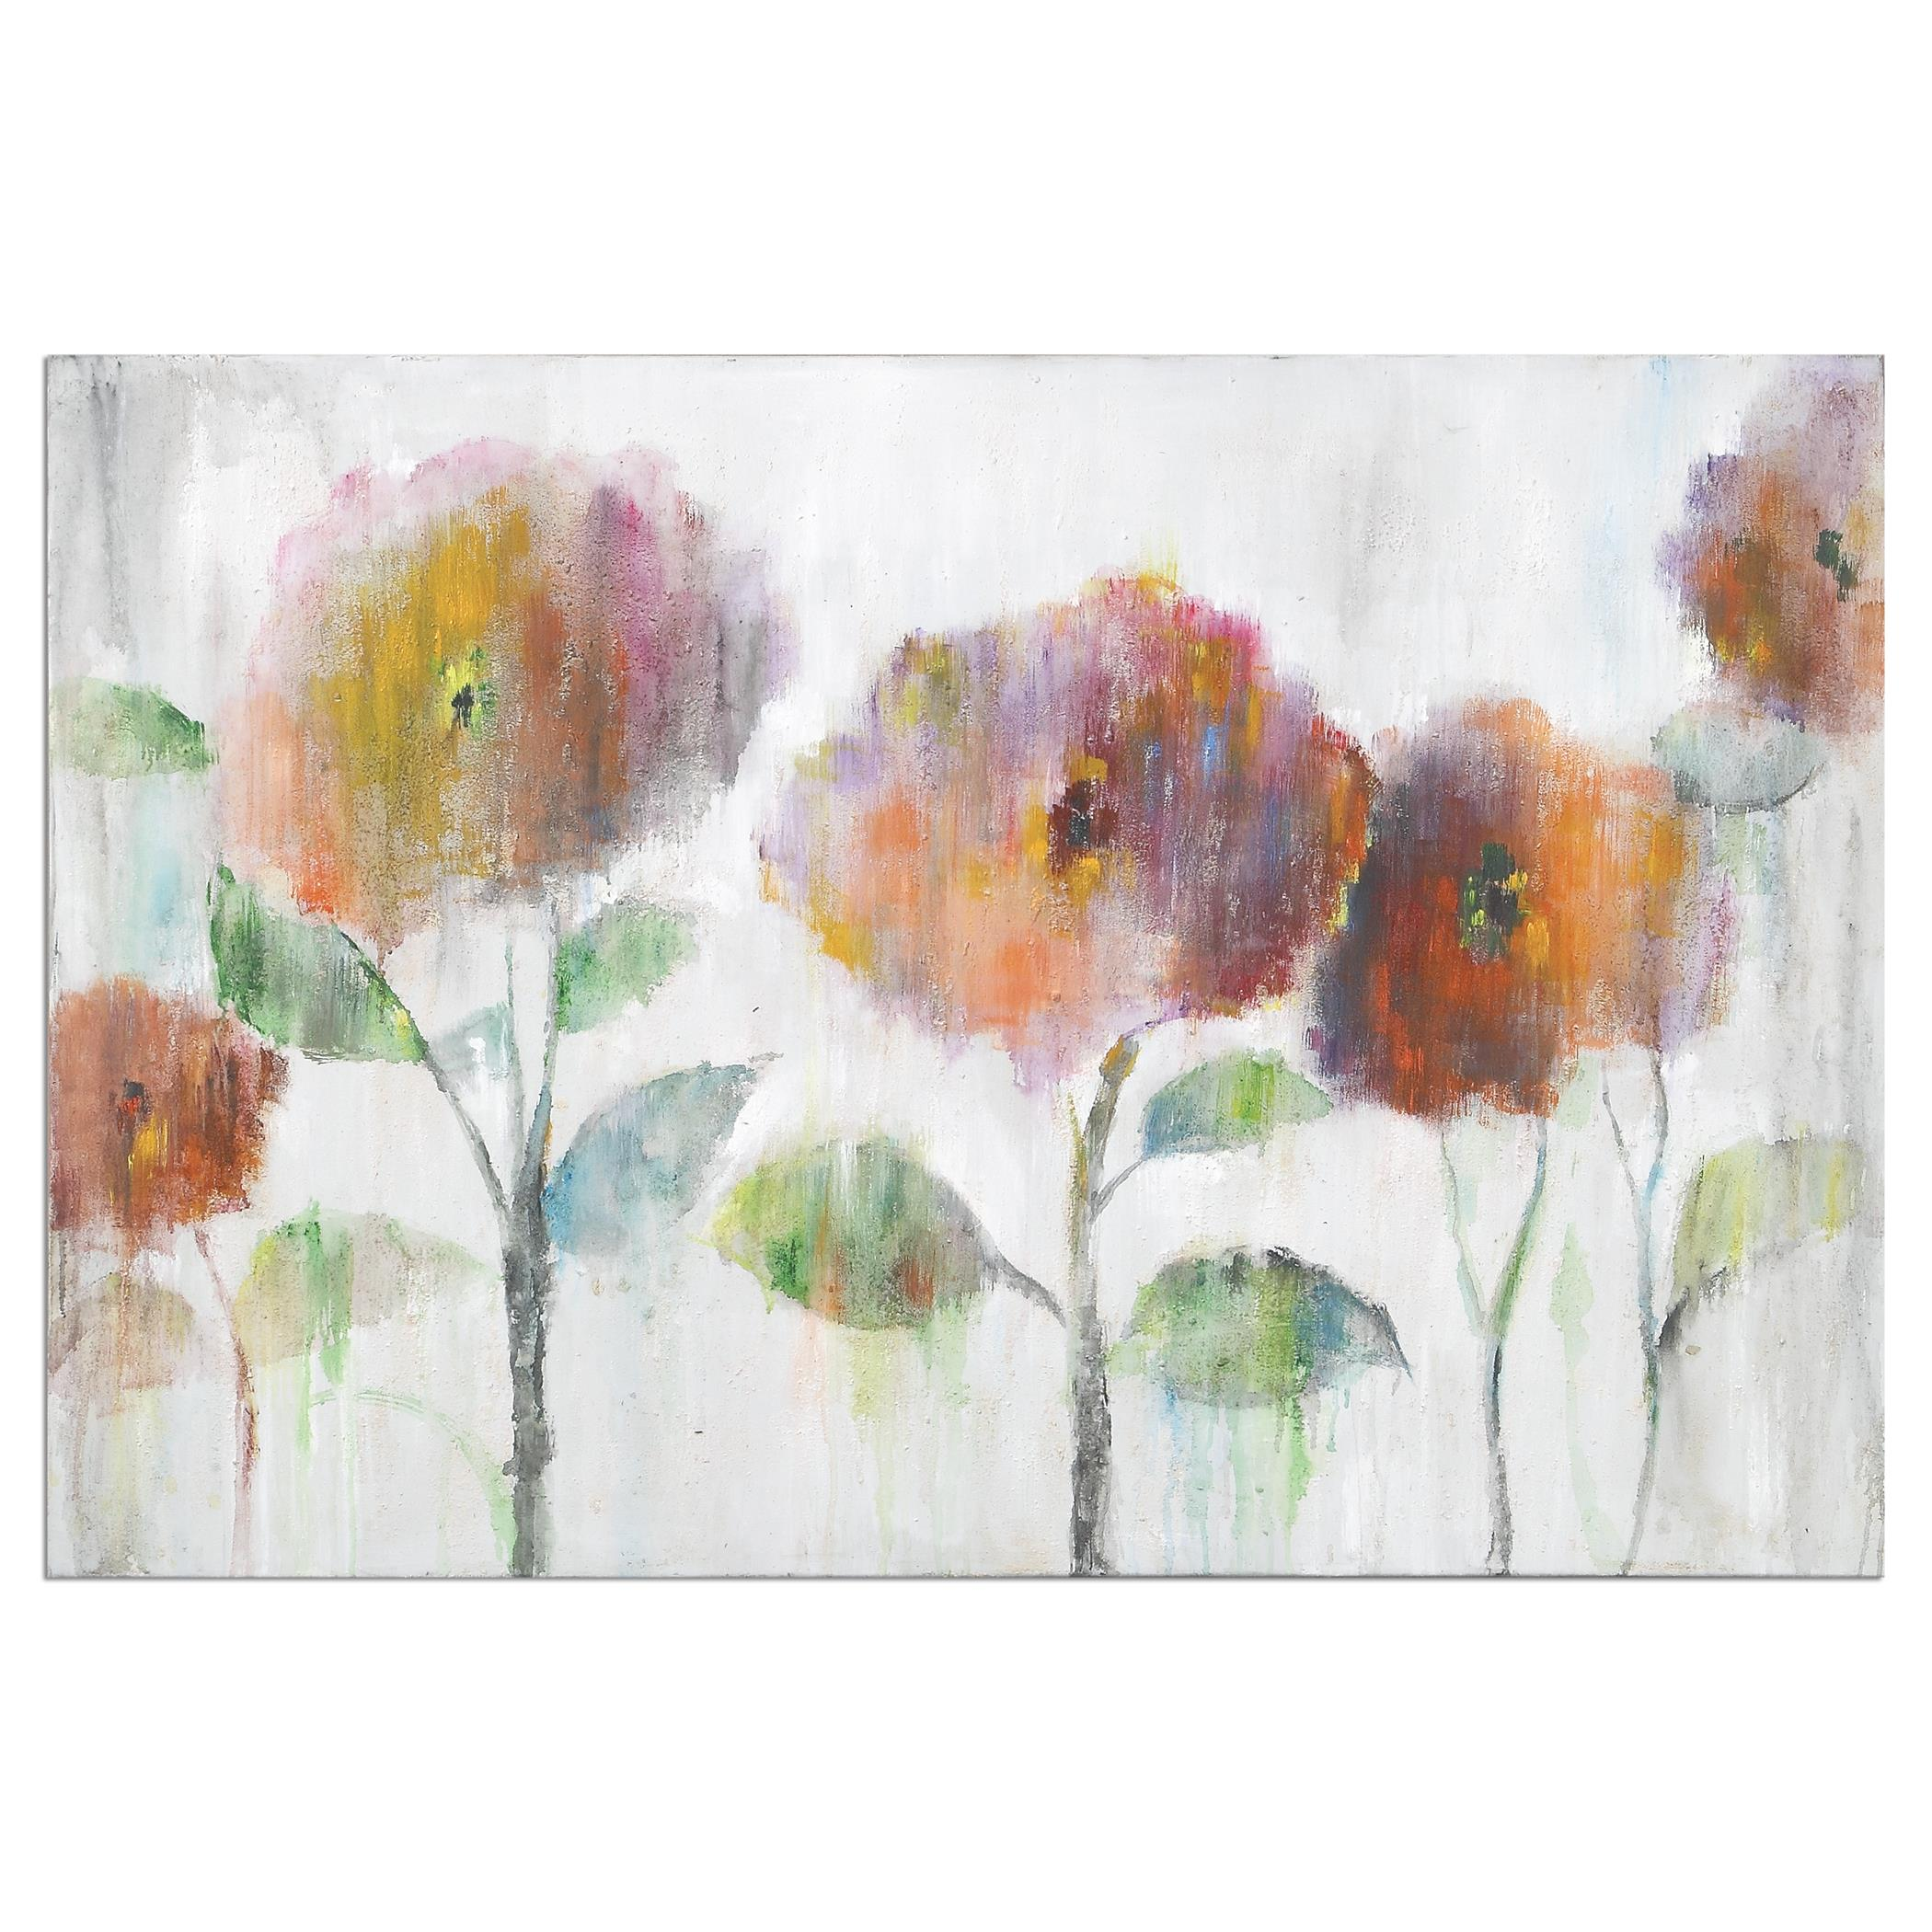 Uttermost Art Flowers Of The Rainbow Canvas Art - Item Number: 35317